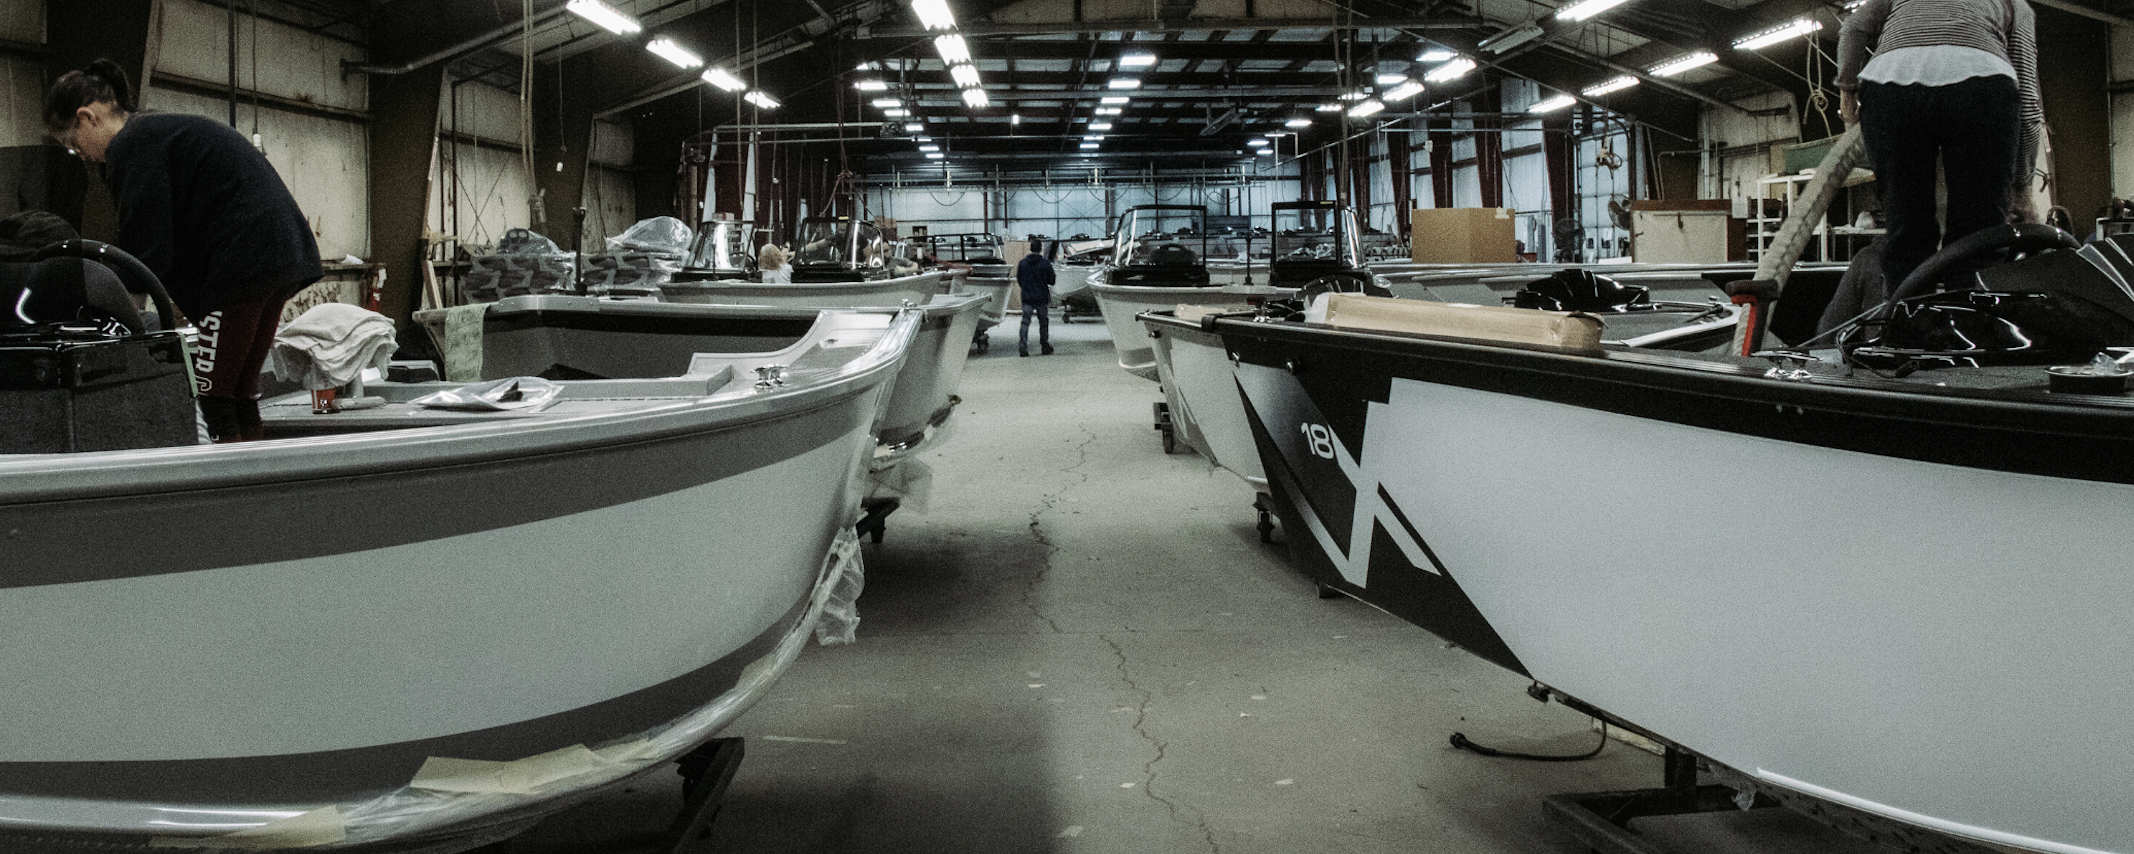 PASS COVID-19 RELIEF TO SUPPORT BOATING BUSINESSES